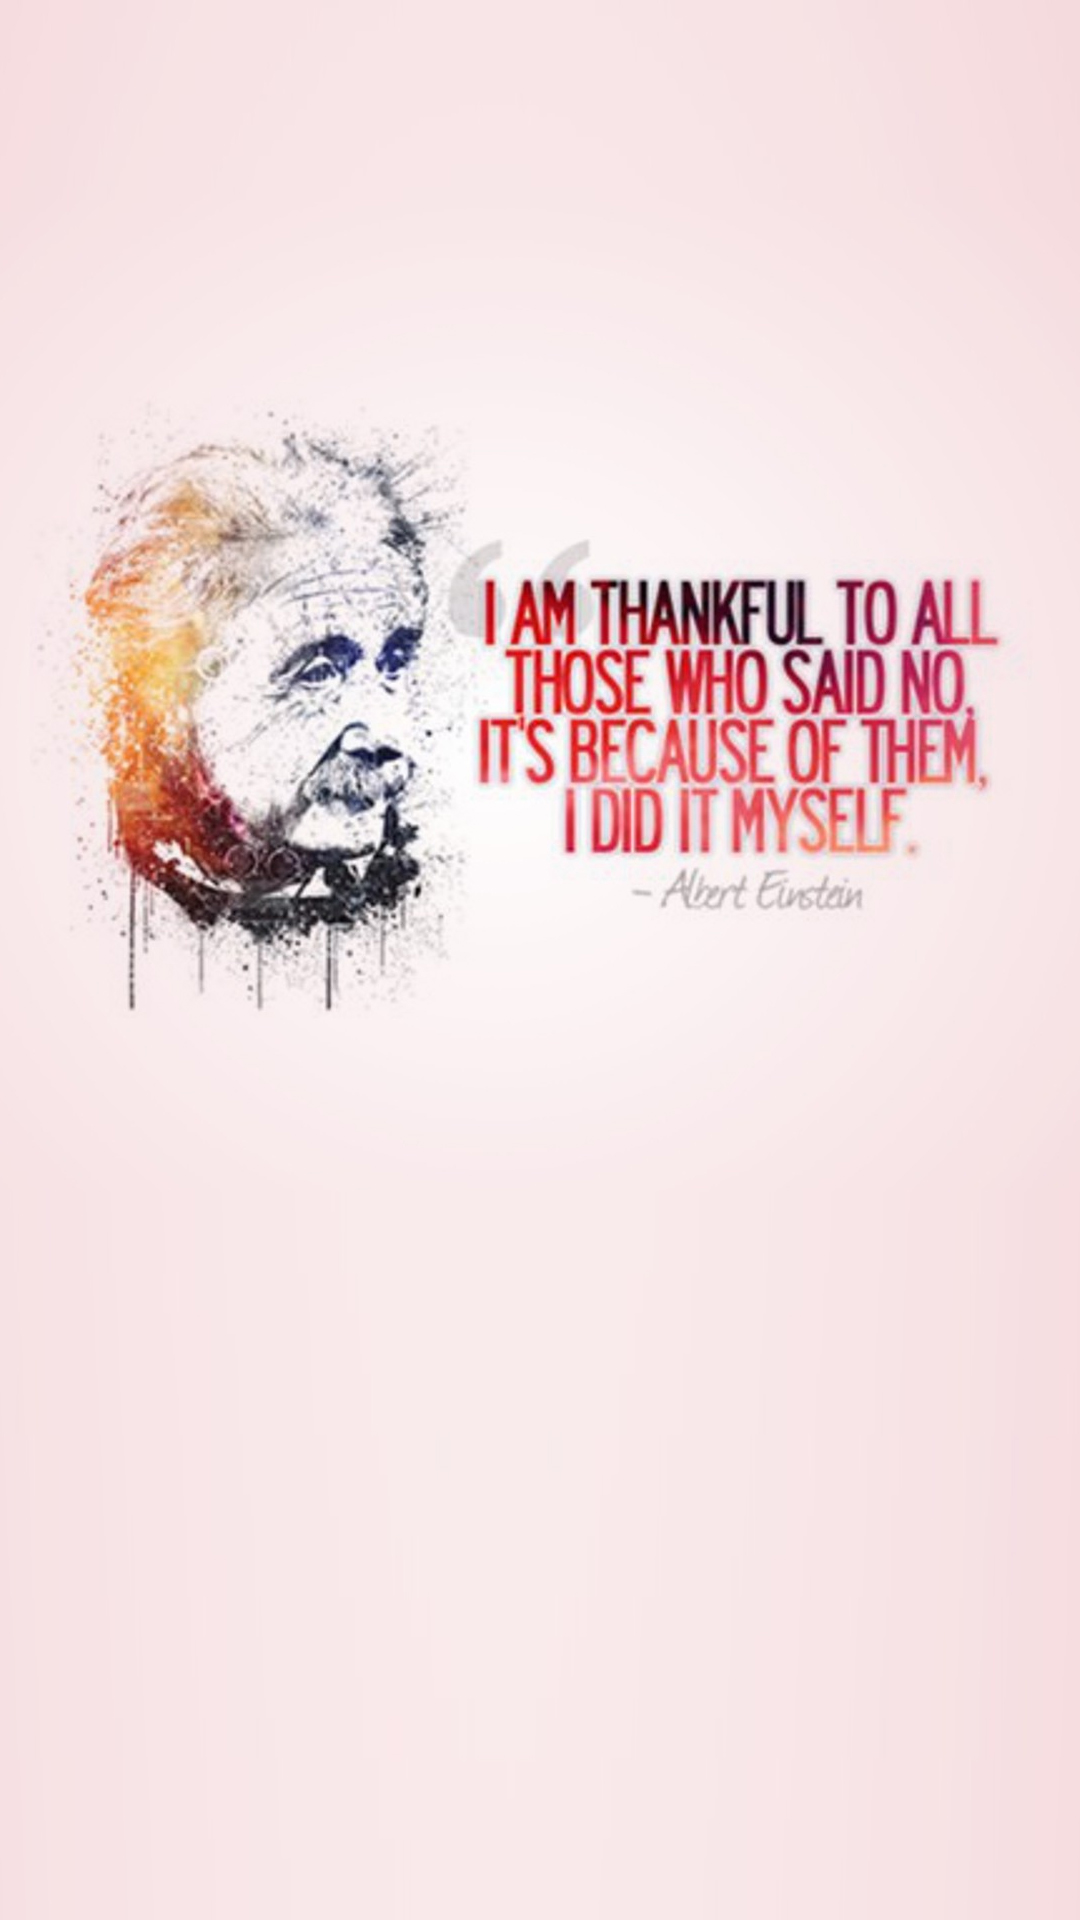 Albert Einstein Smartphone Wallpapers HD